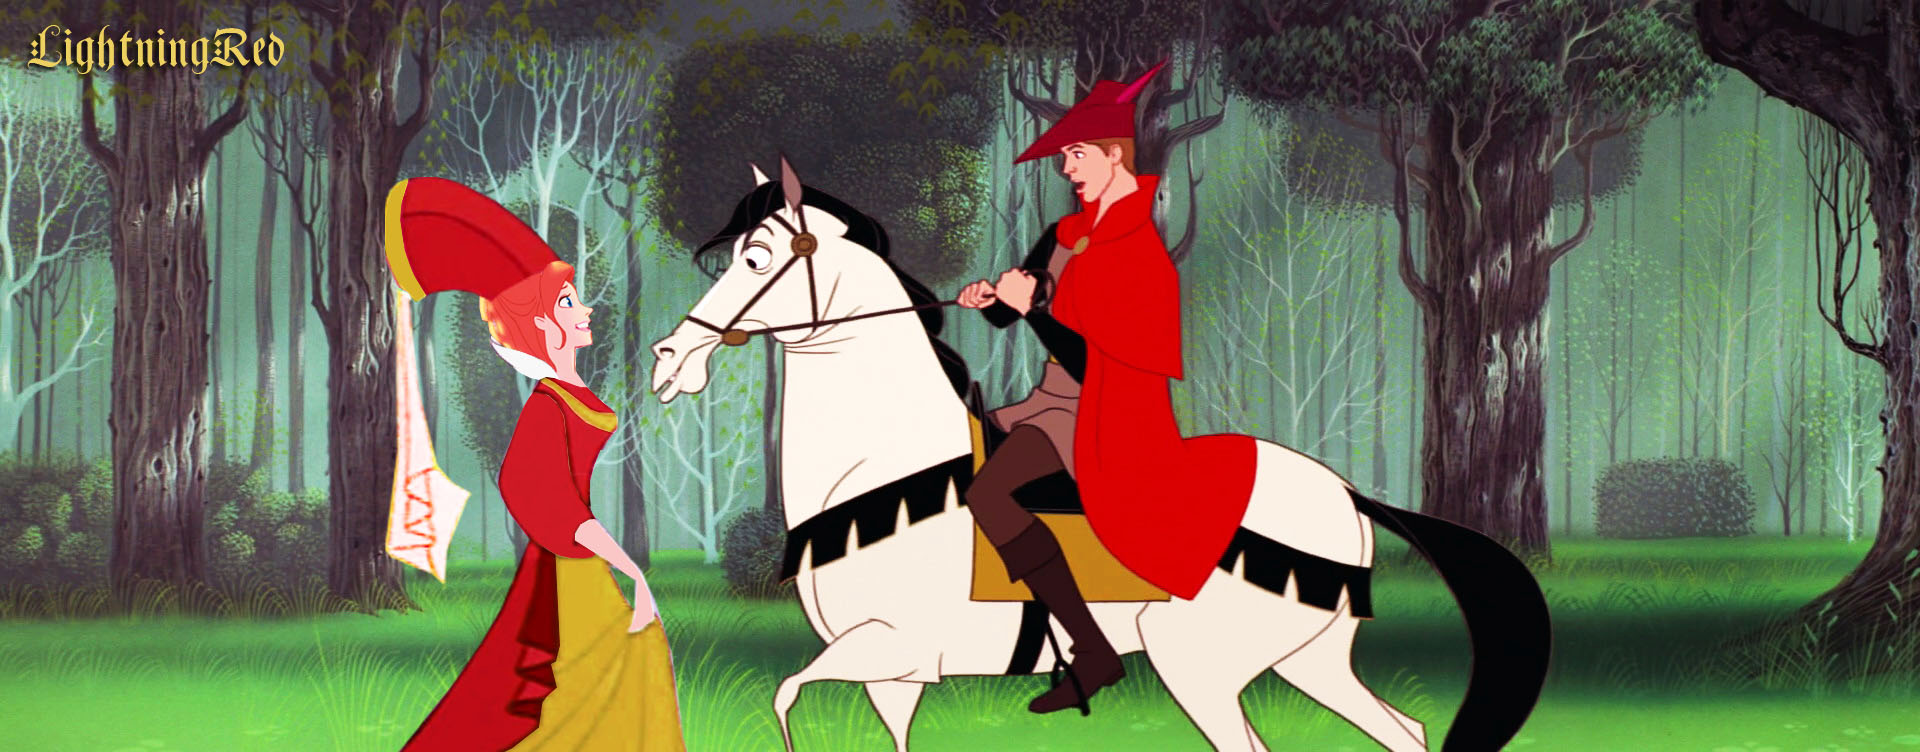 disney crossover images medieval giselle and phillip